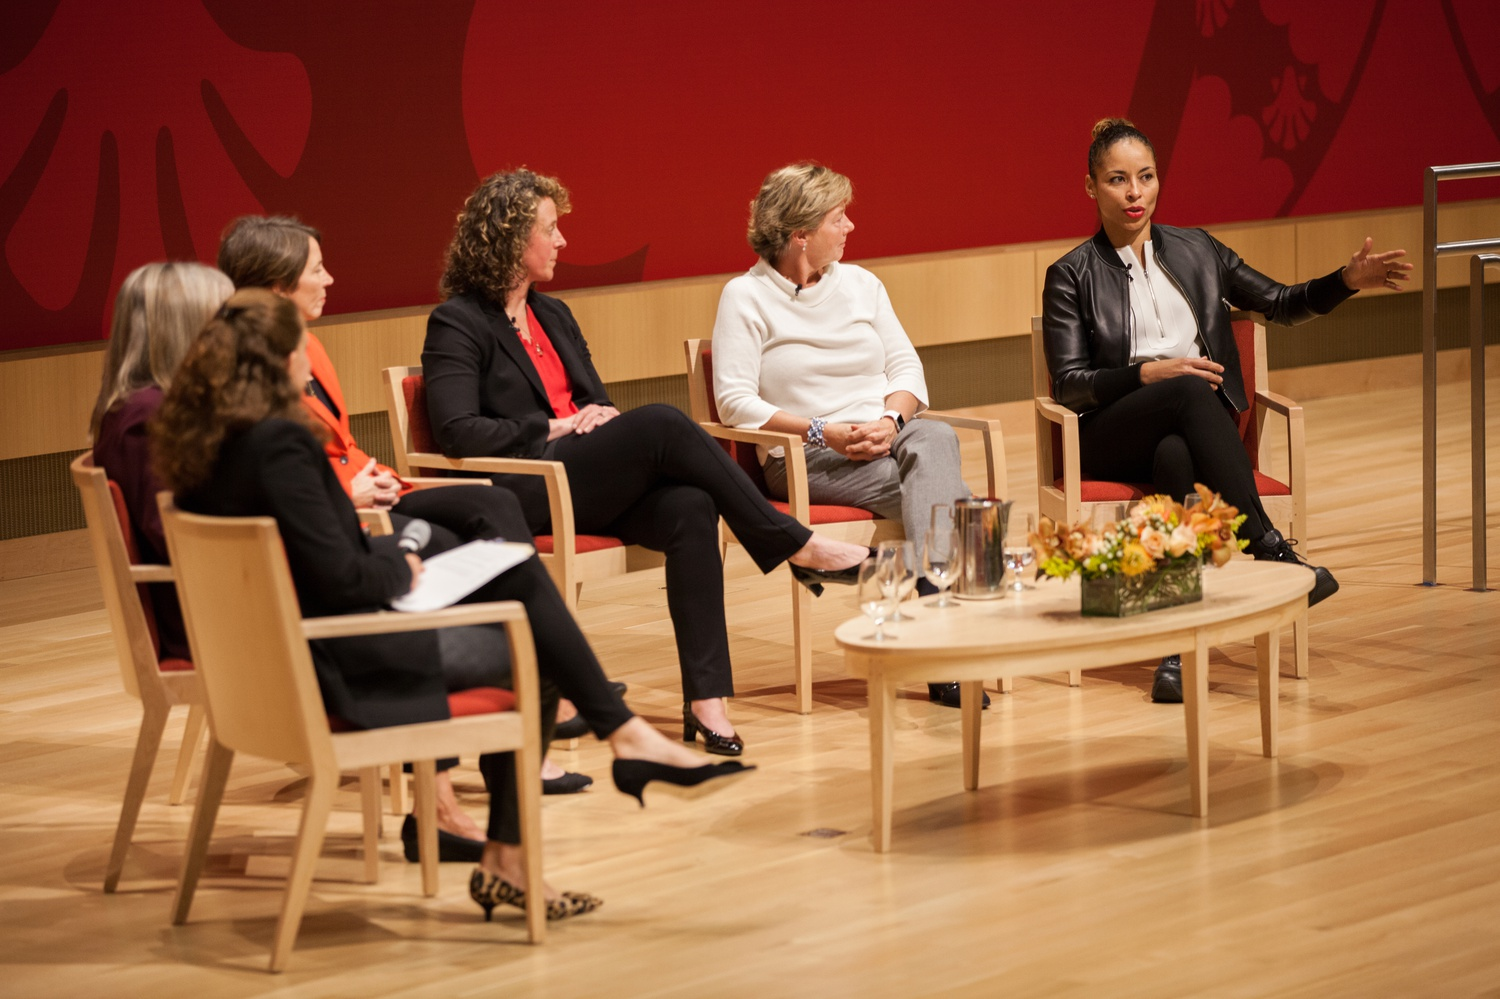 A group of five accomplished women, including women's basketball coach Kathy Delaney-Smith, discussed leadership in a panel at HBS.